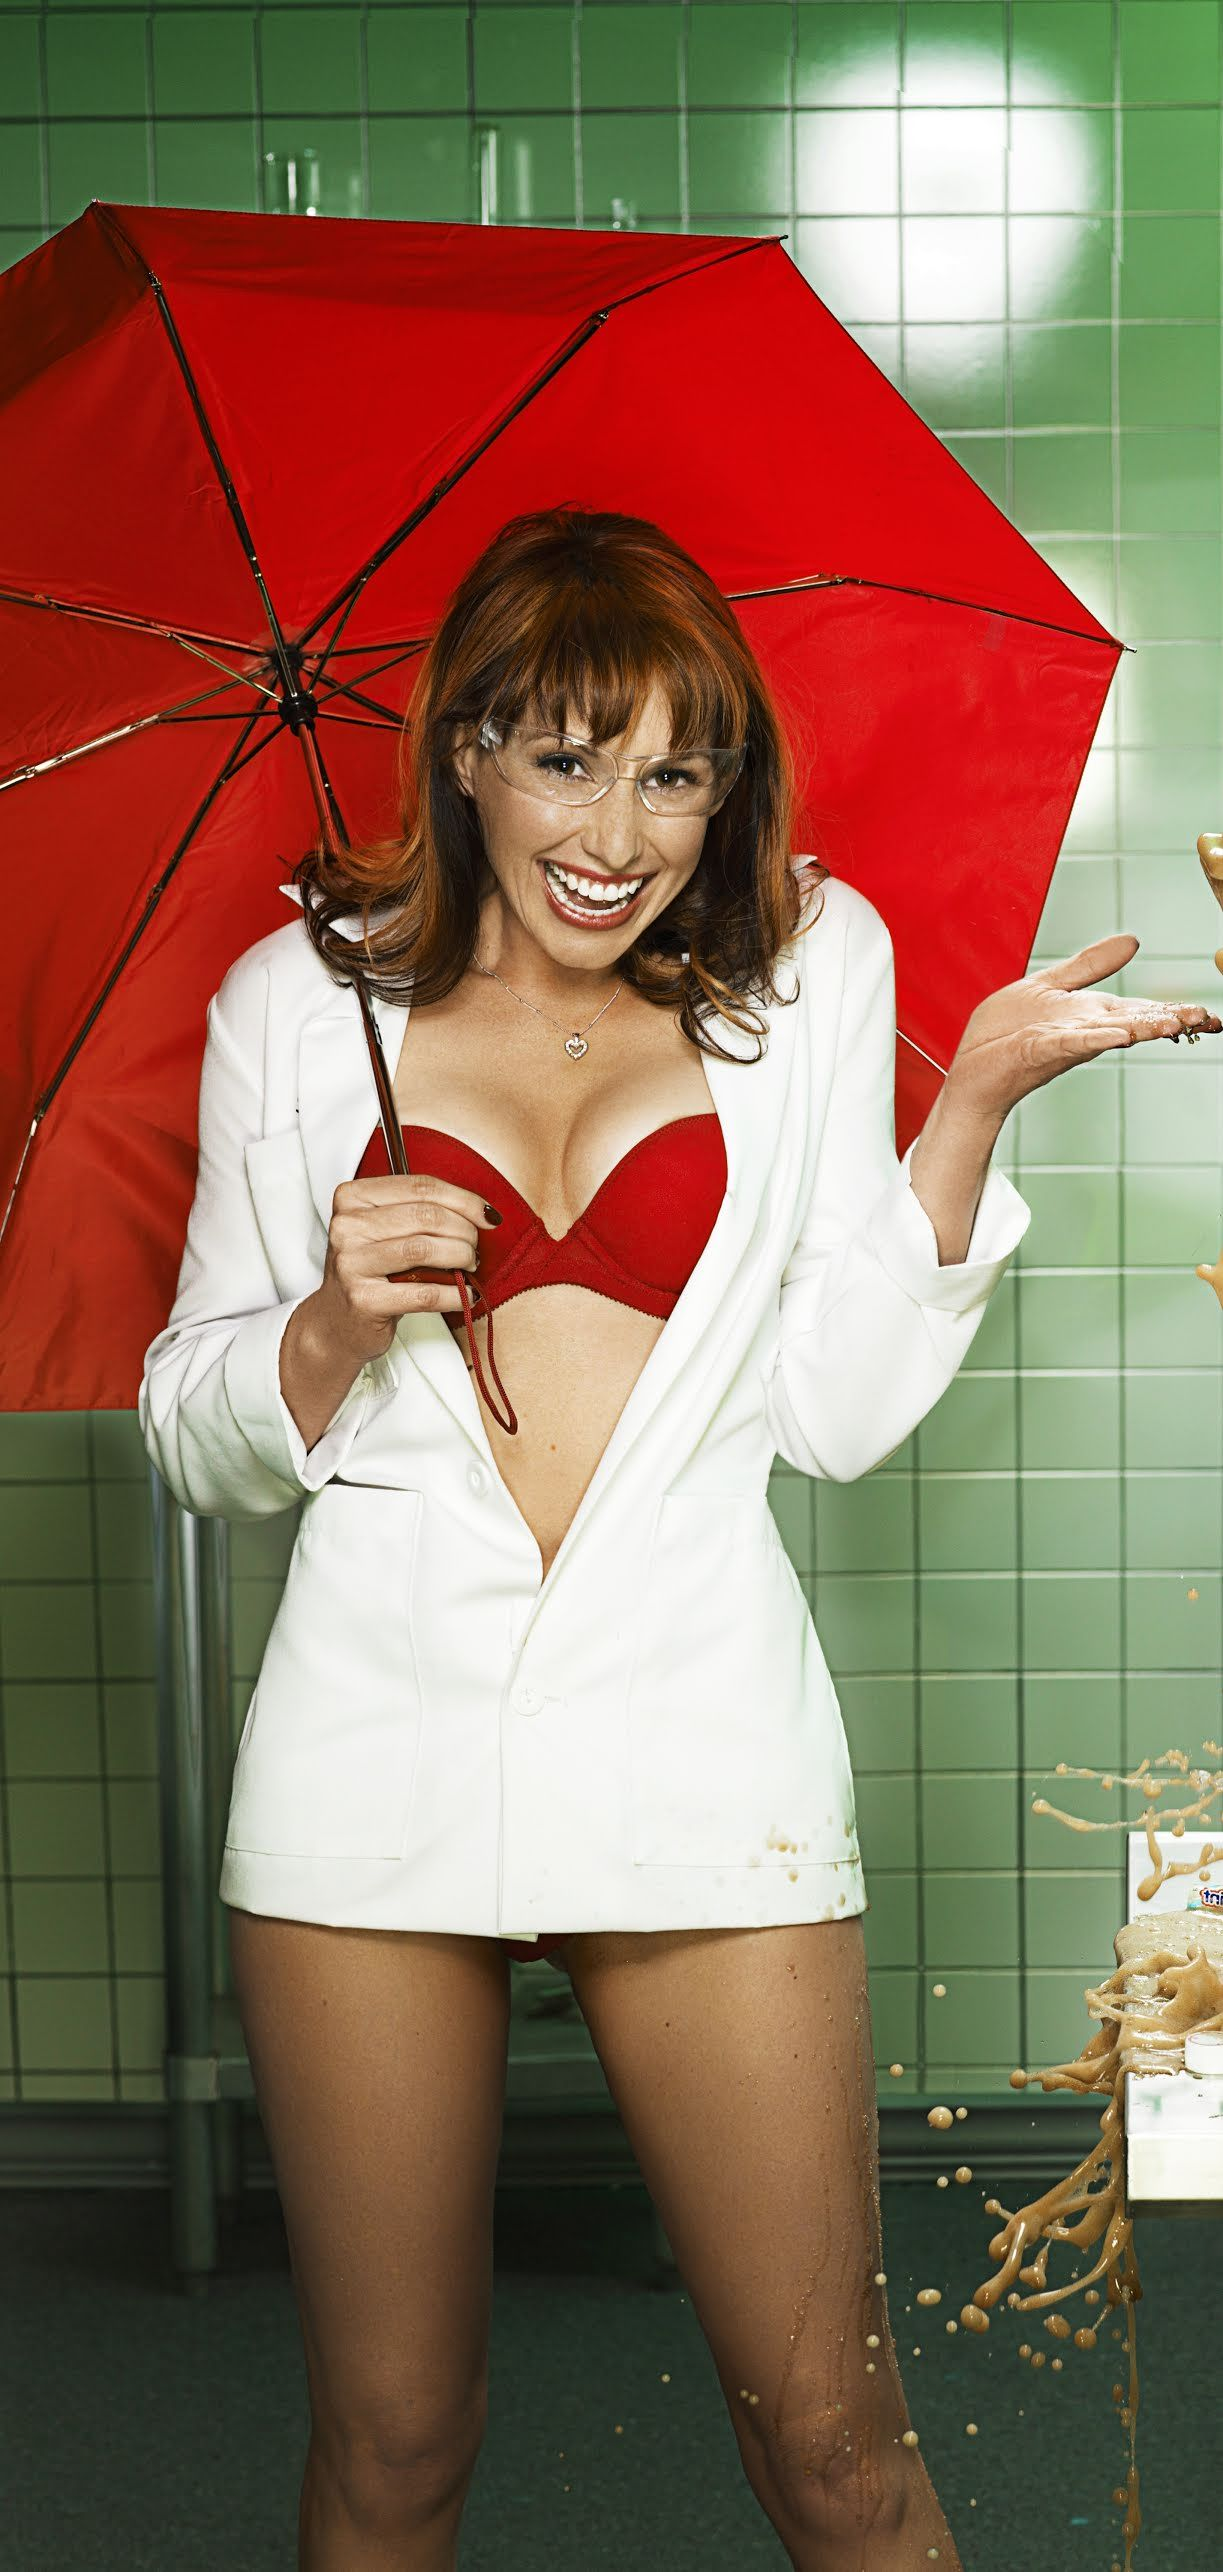 Kari byron fhm shoot